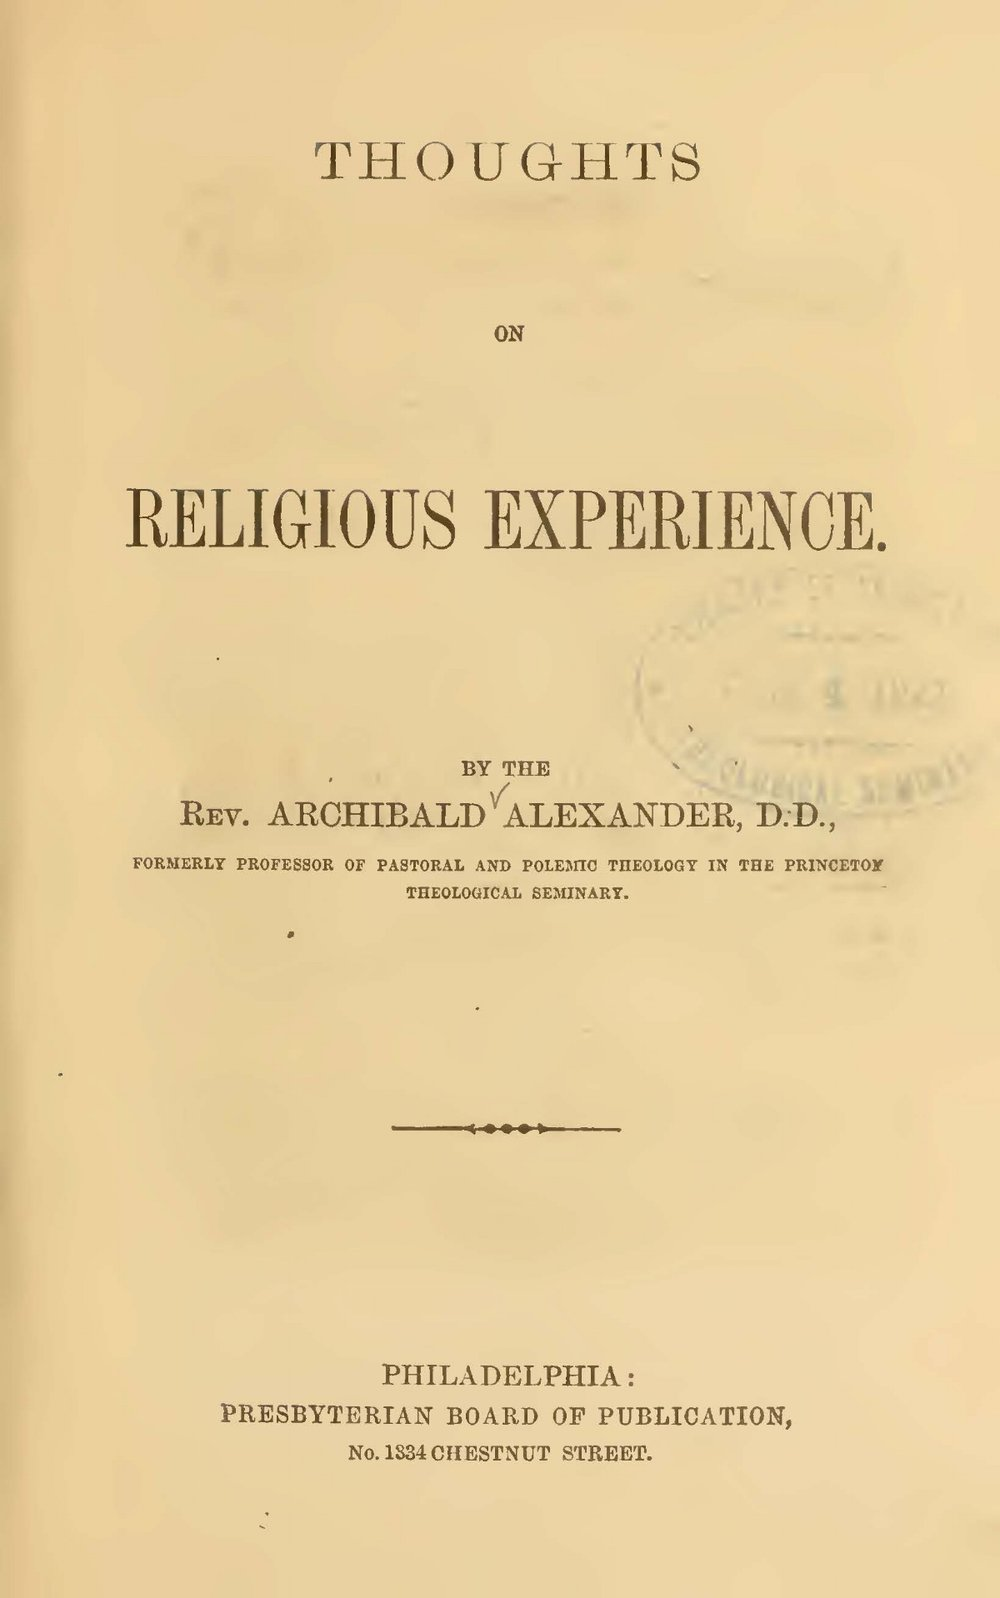 Alexander, Archibald, Thoughts on Religious Experience Title Page.jpg